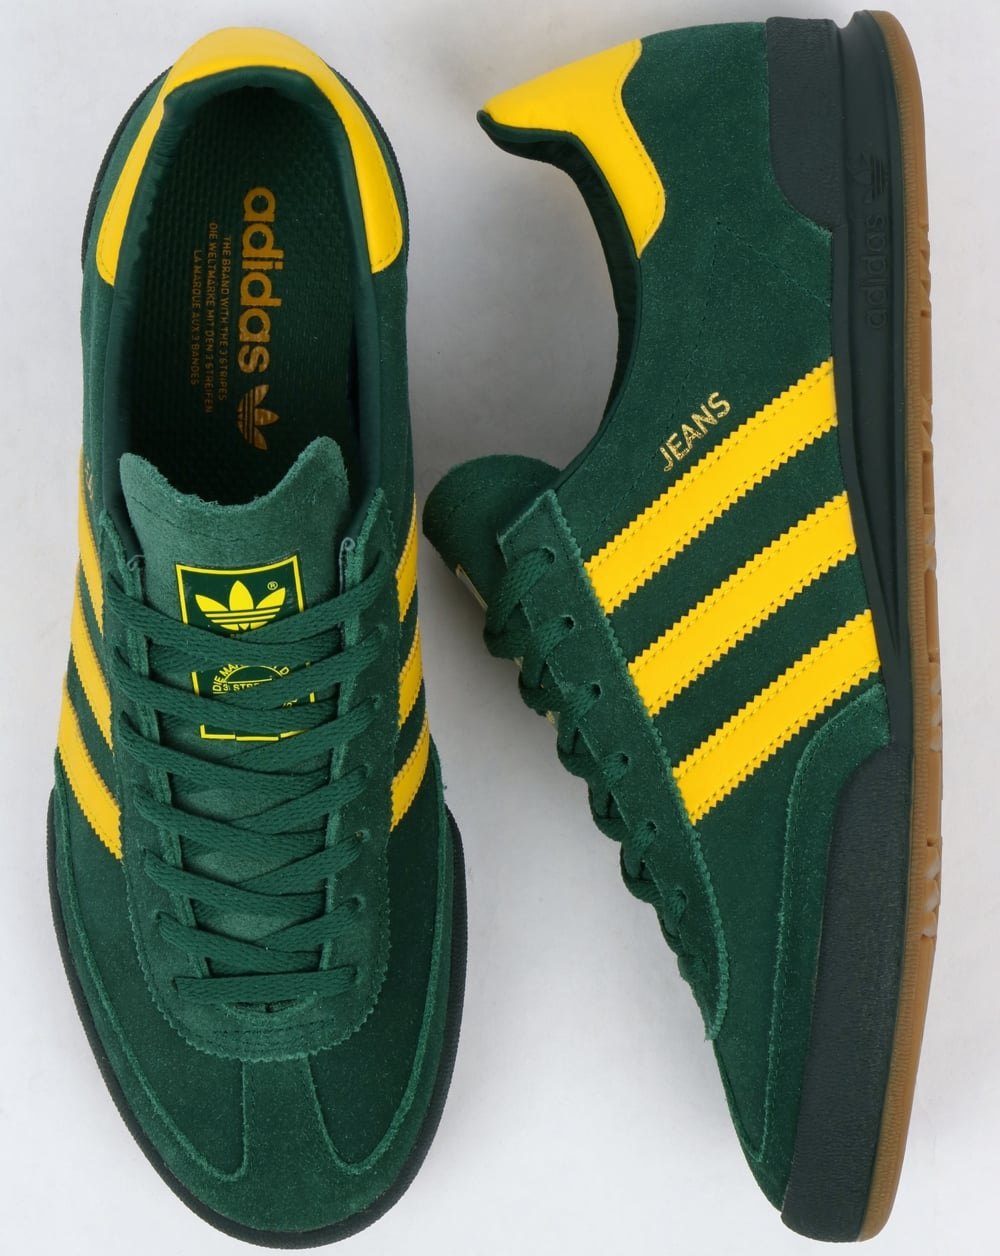 Yellow And Green Living Room Decor: Adidas Jeans MK2 Trainers Green/Yellow,shoes,Suede